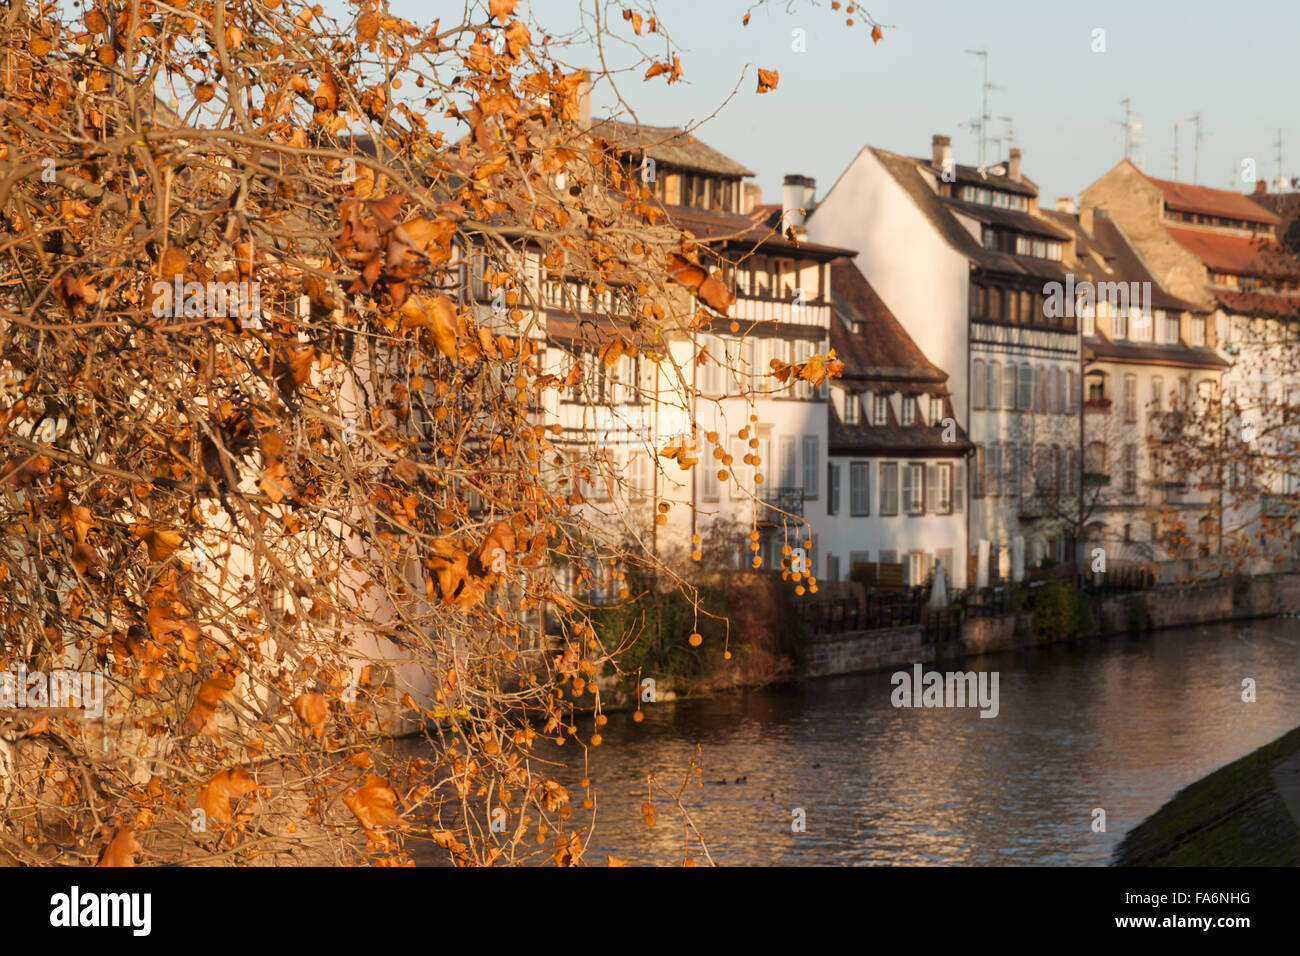 Houses along the River Ill in Petite France in autumn, Strasbourg Old Town, France Europe - Stock Image